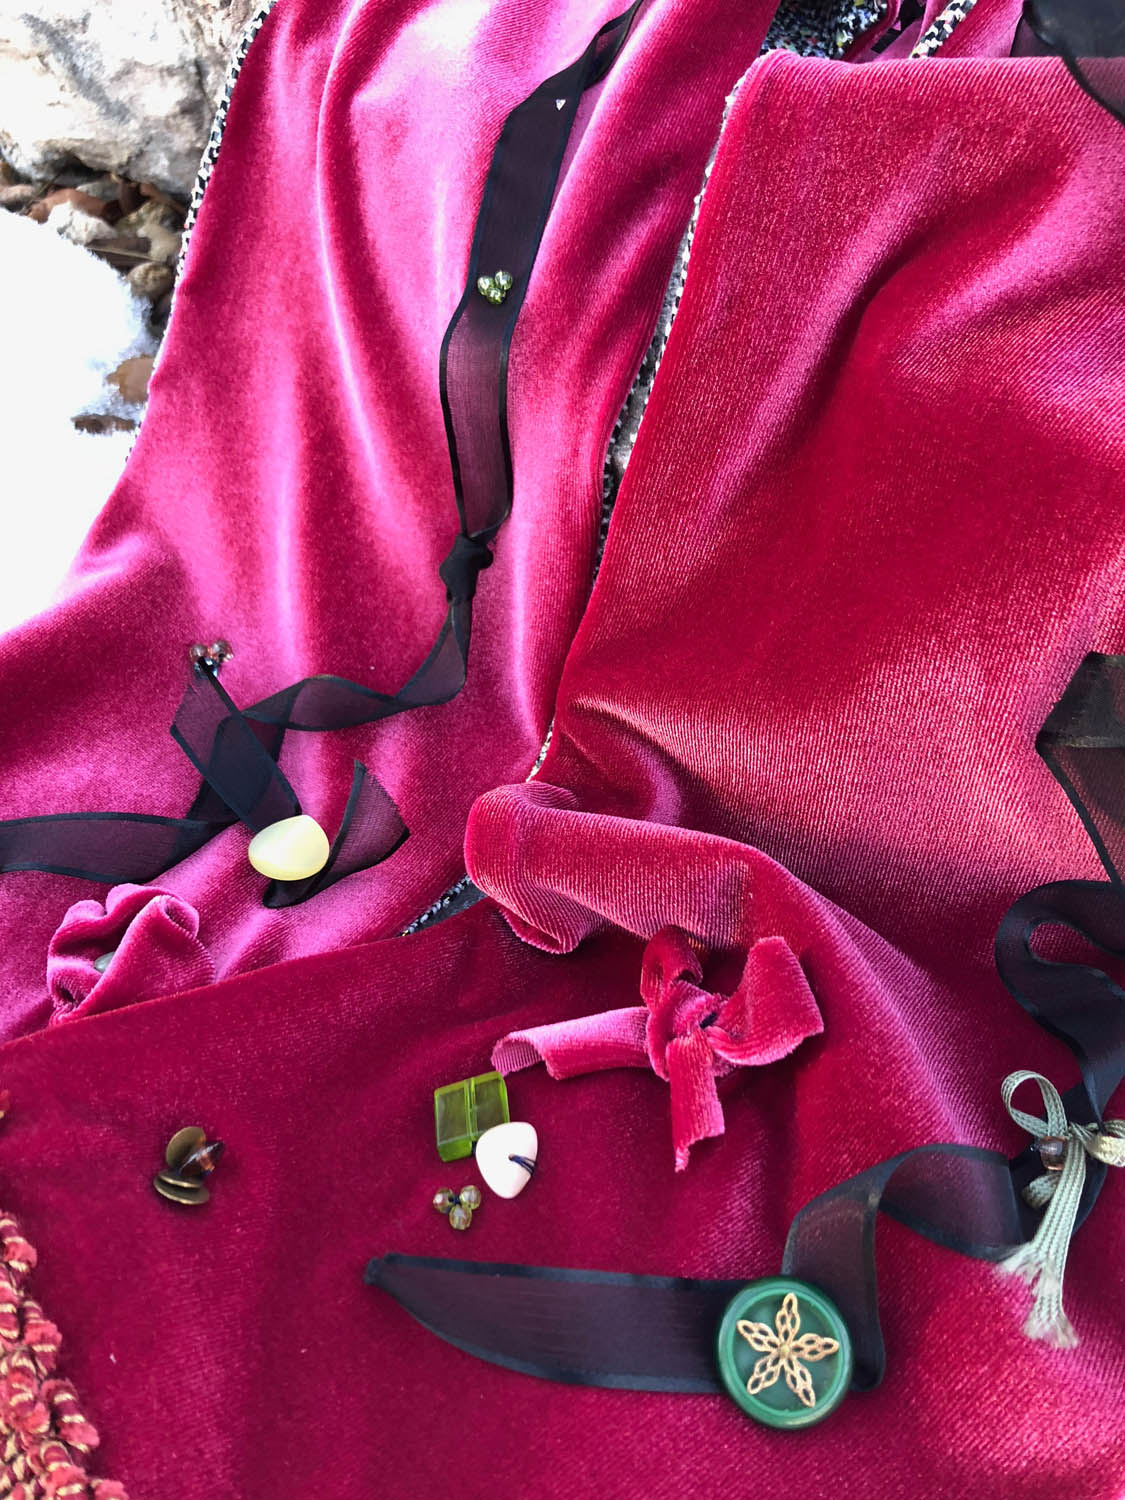 10b-detail-showing-attached-ribbons-beads-buttons-and-trim.jpg